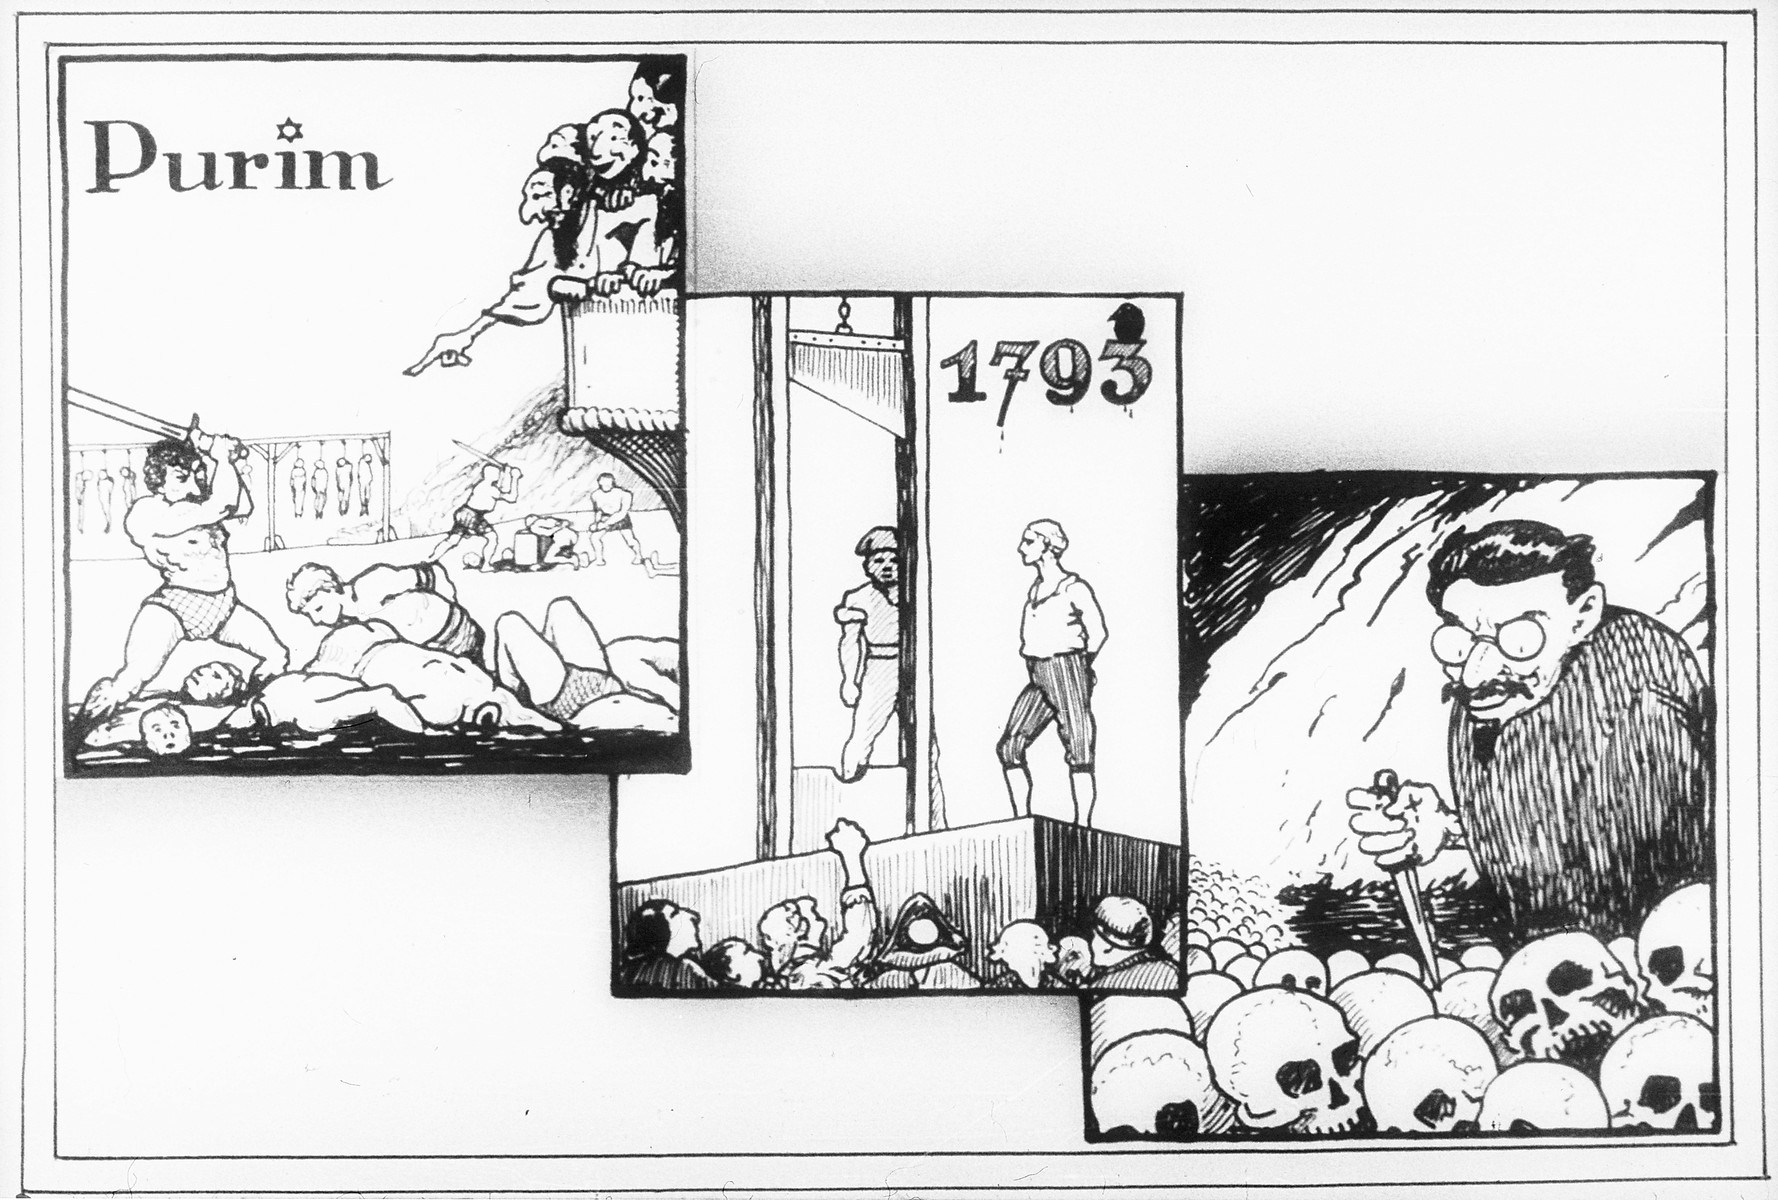 """Propaganda slide entitled """"Purim,"""" featuring three images showing Jewish responsibility for catastrophic historical events: the demise of Haman, the terror of the French Revolution and the horror of the Bolshevik Revolution."""